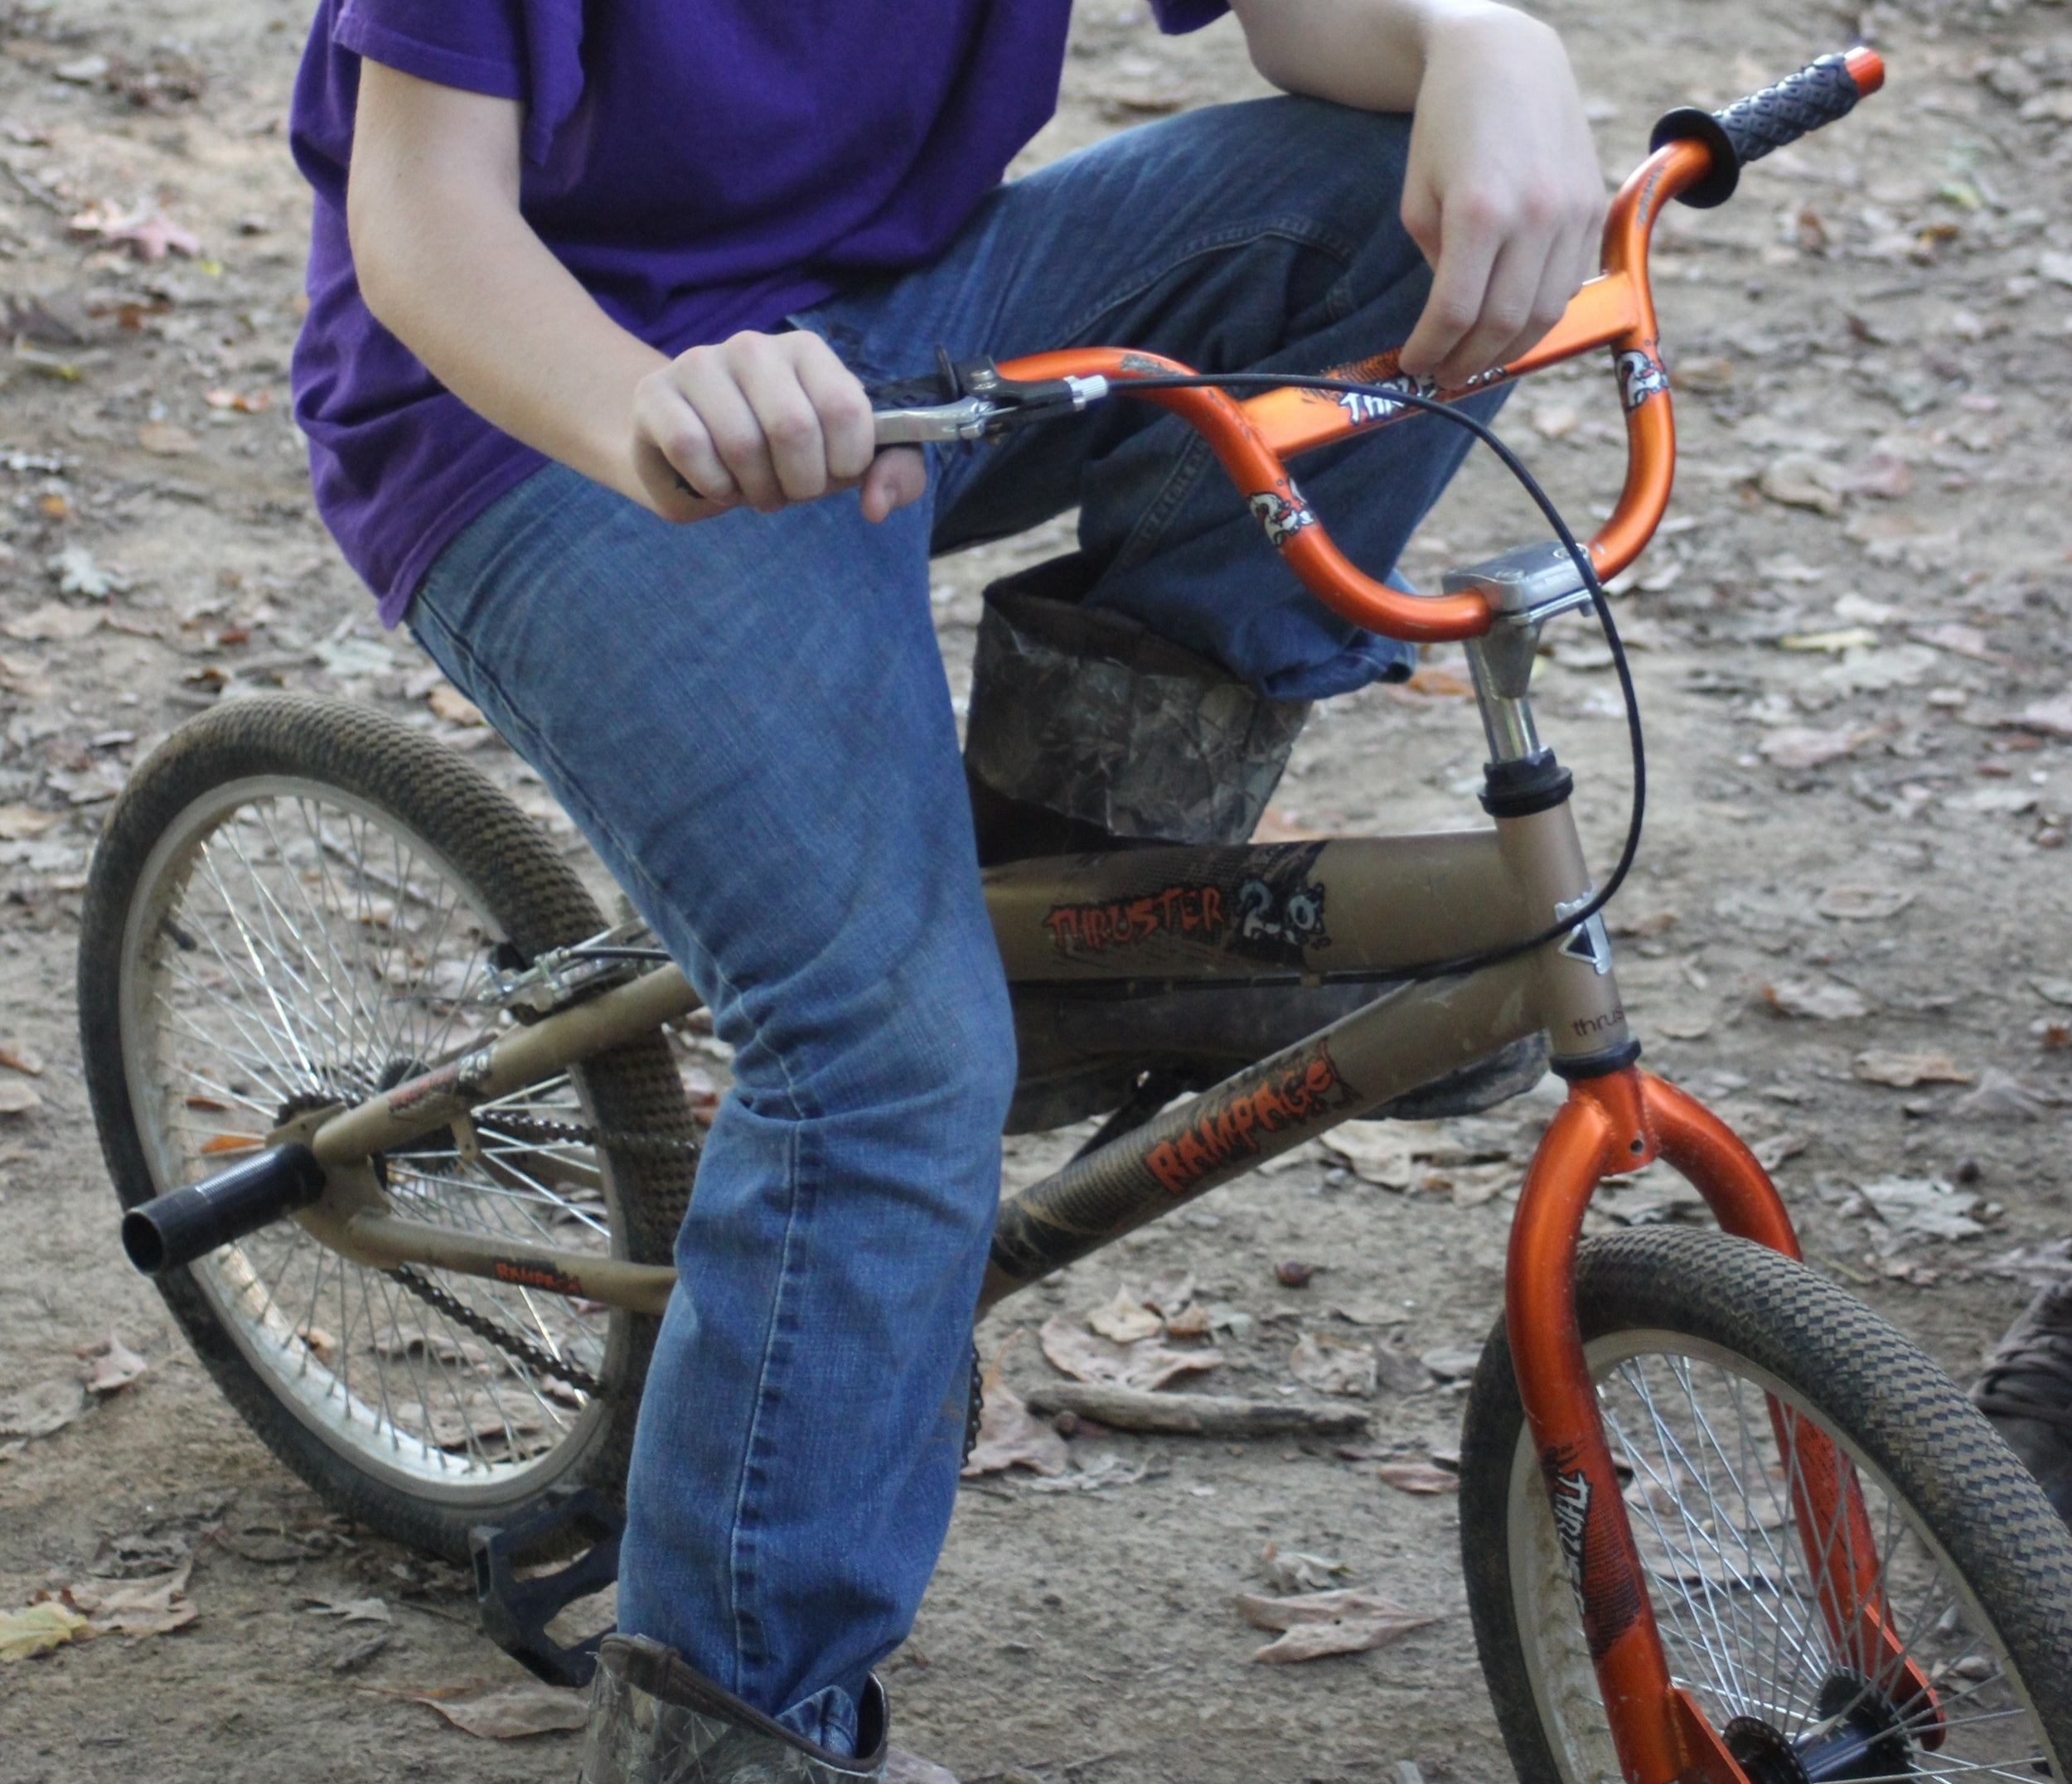 Get a Bike - Trail Heads accepts applications for bikes to be donated to anyone in need. Click the link above to get started.